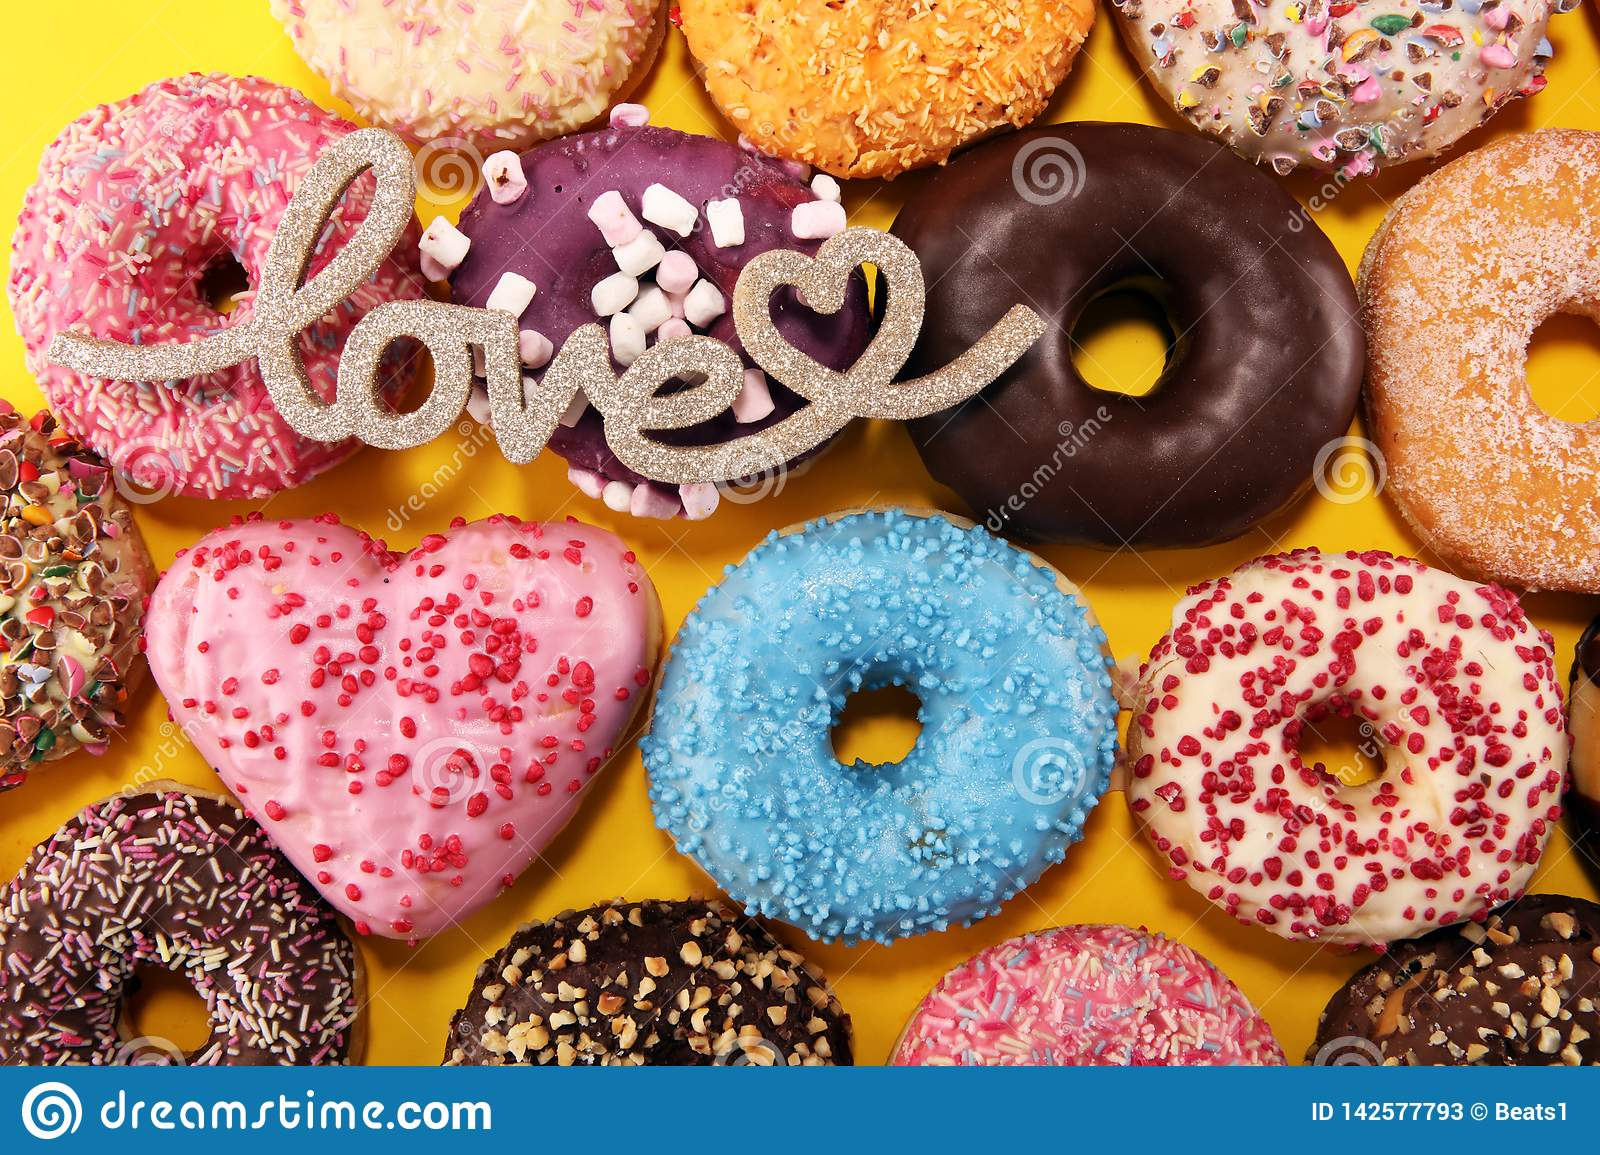 Assorted donuts with chocolate frosted, pink glazed and sprinkles donuts